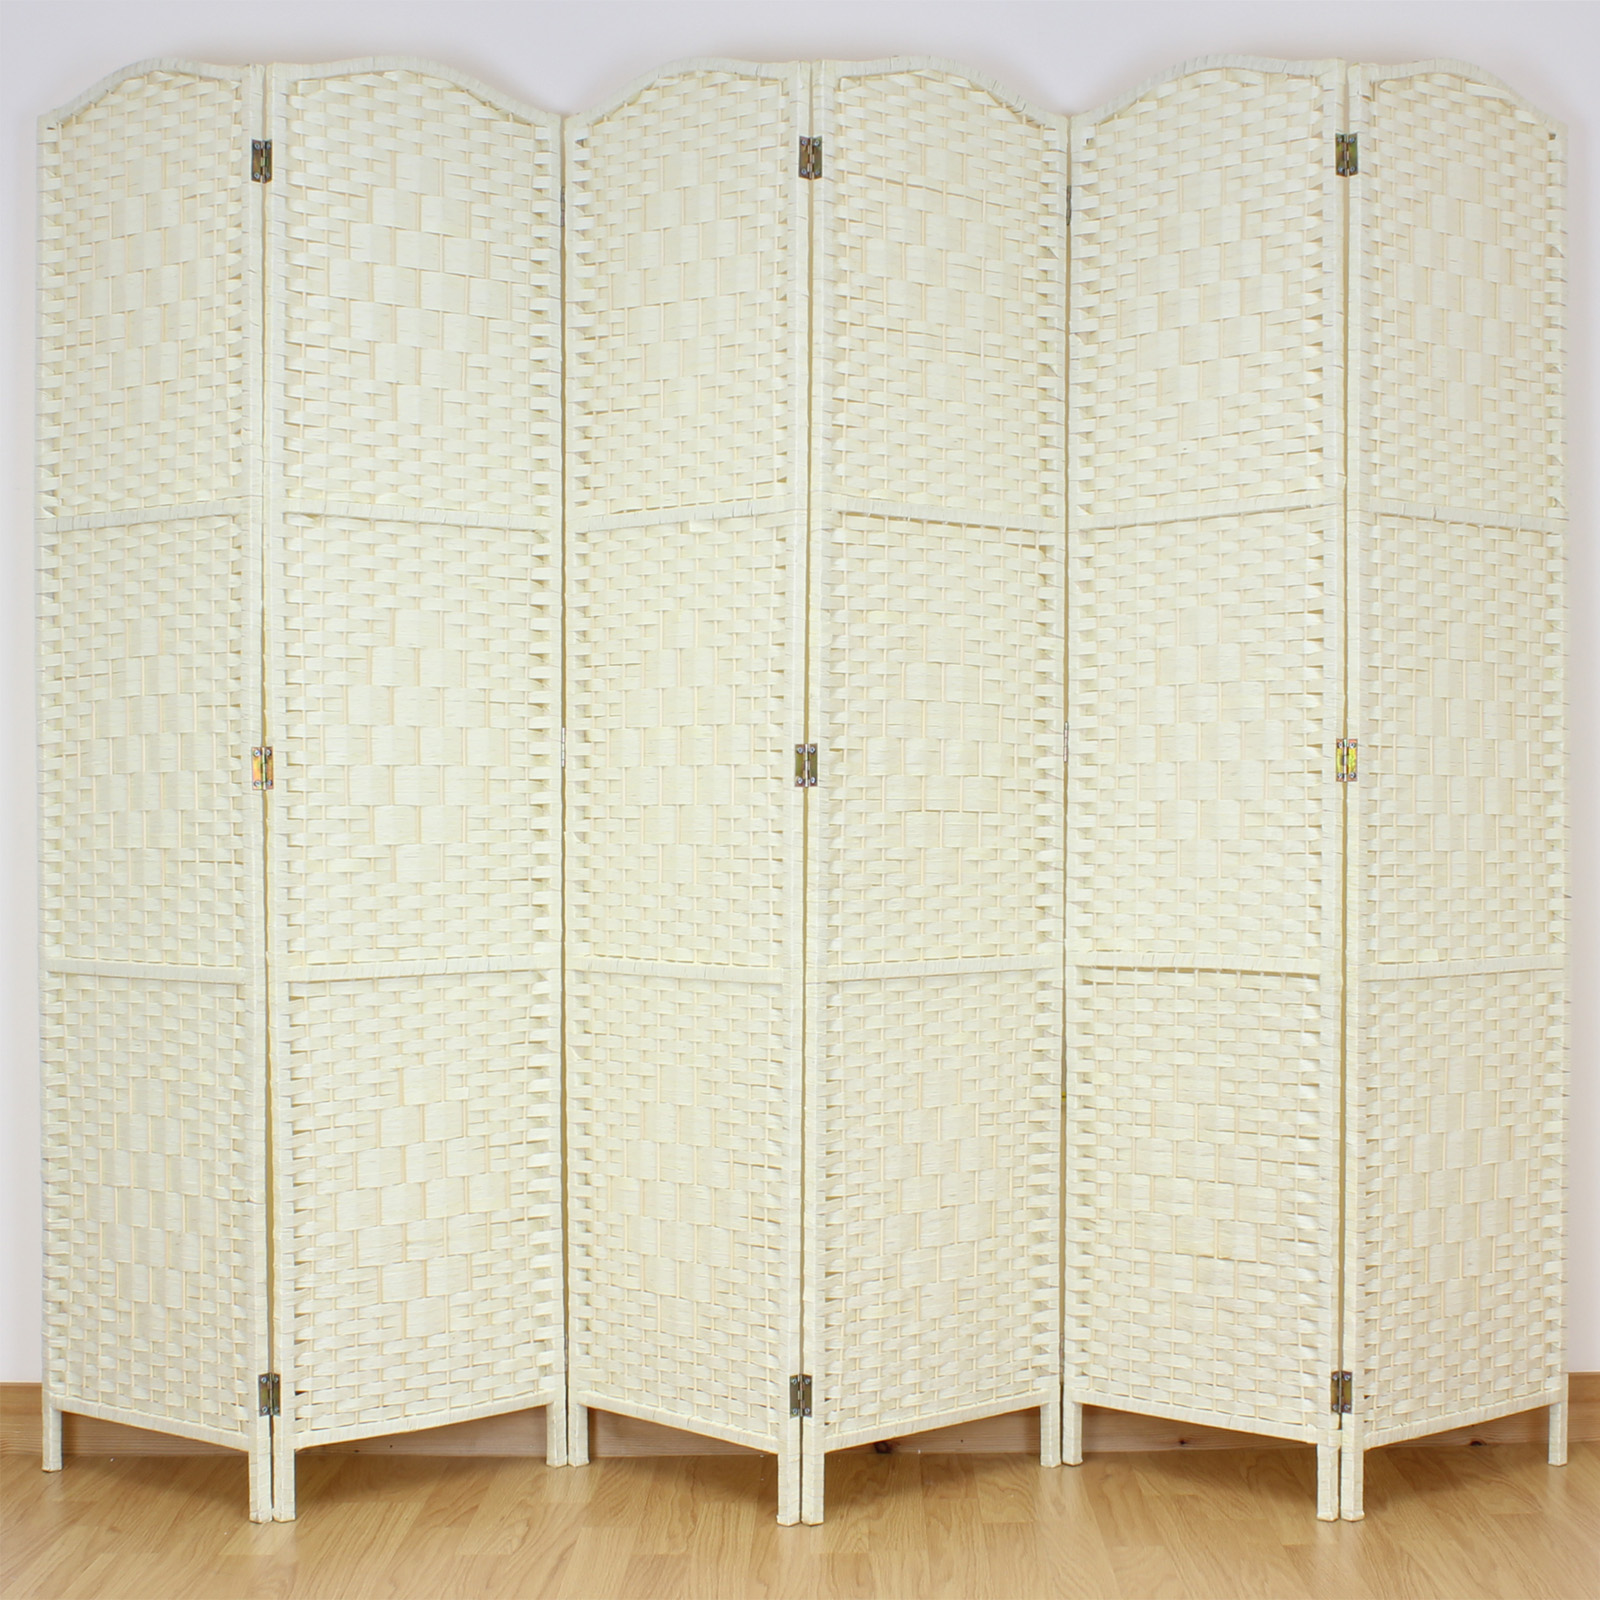 light cream 6 panel solid weave wicker room divider hand made privacy screen ebay. Black Bedroom Furniture Sets. Home Design Ideas